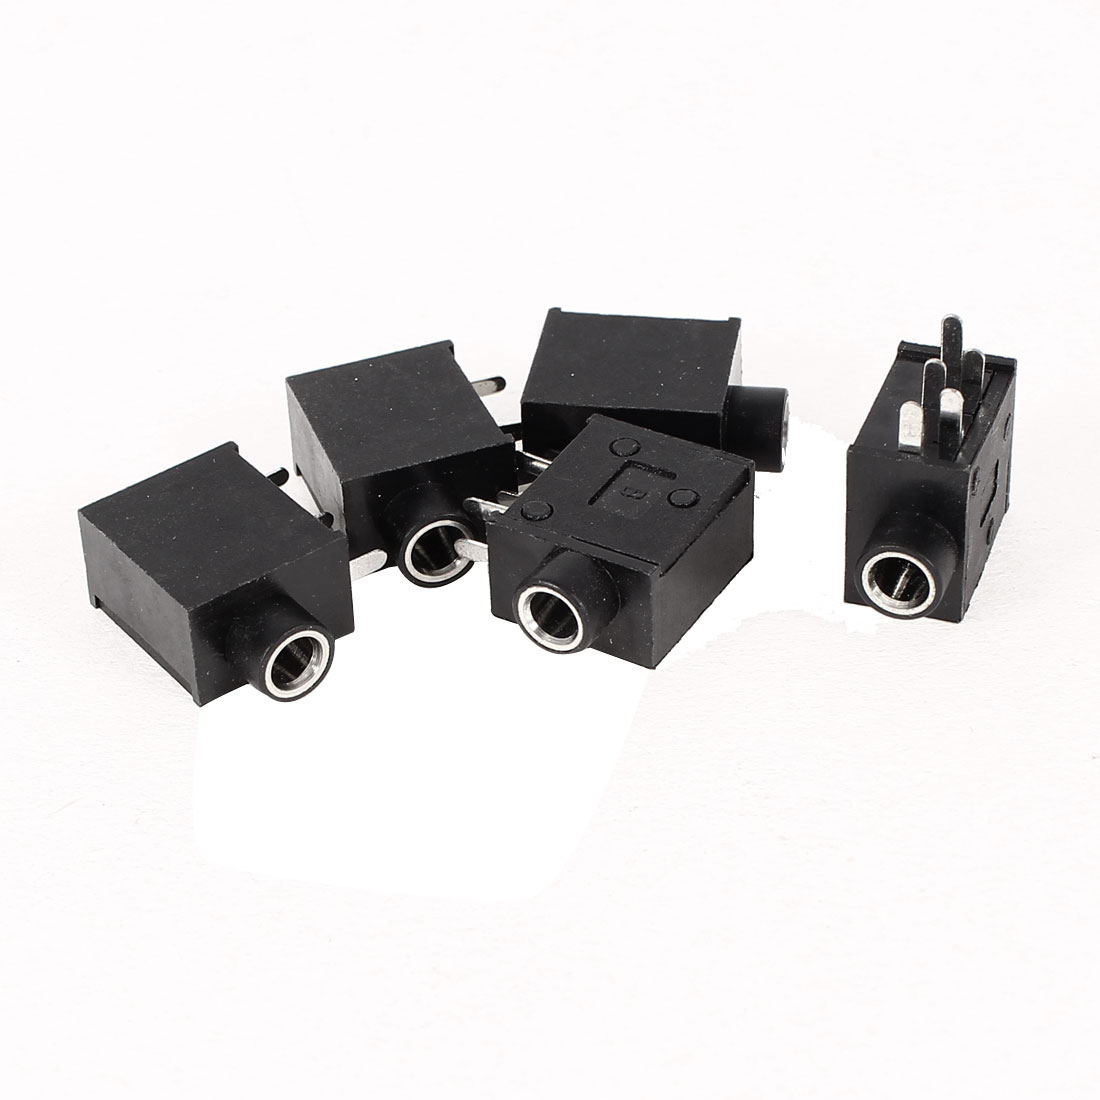 5 Pcs PCB Mount 5 Poles Terminals 3.5mm Female Stereo Audio Jack Socket Connector